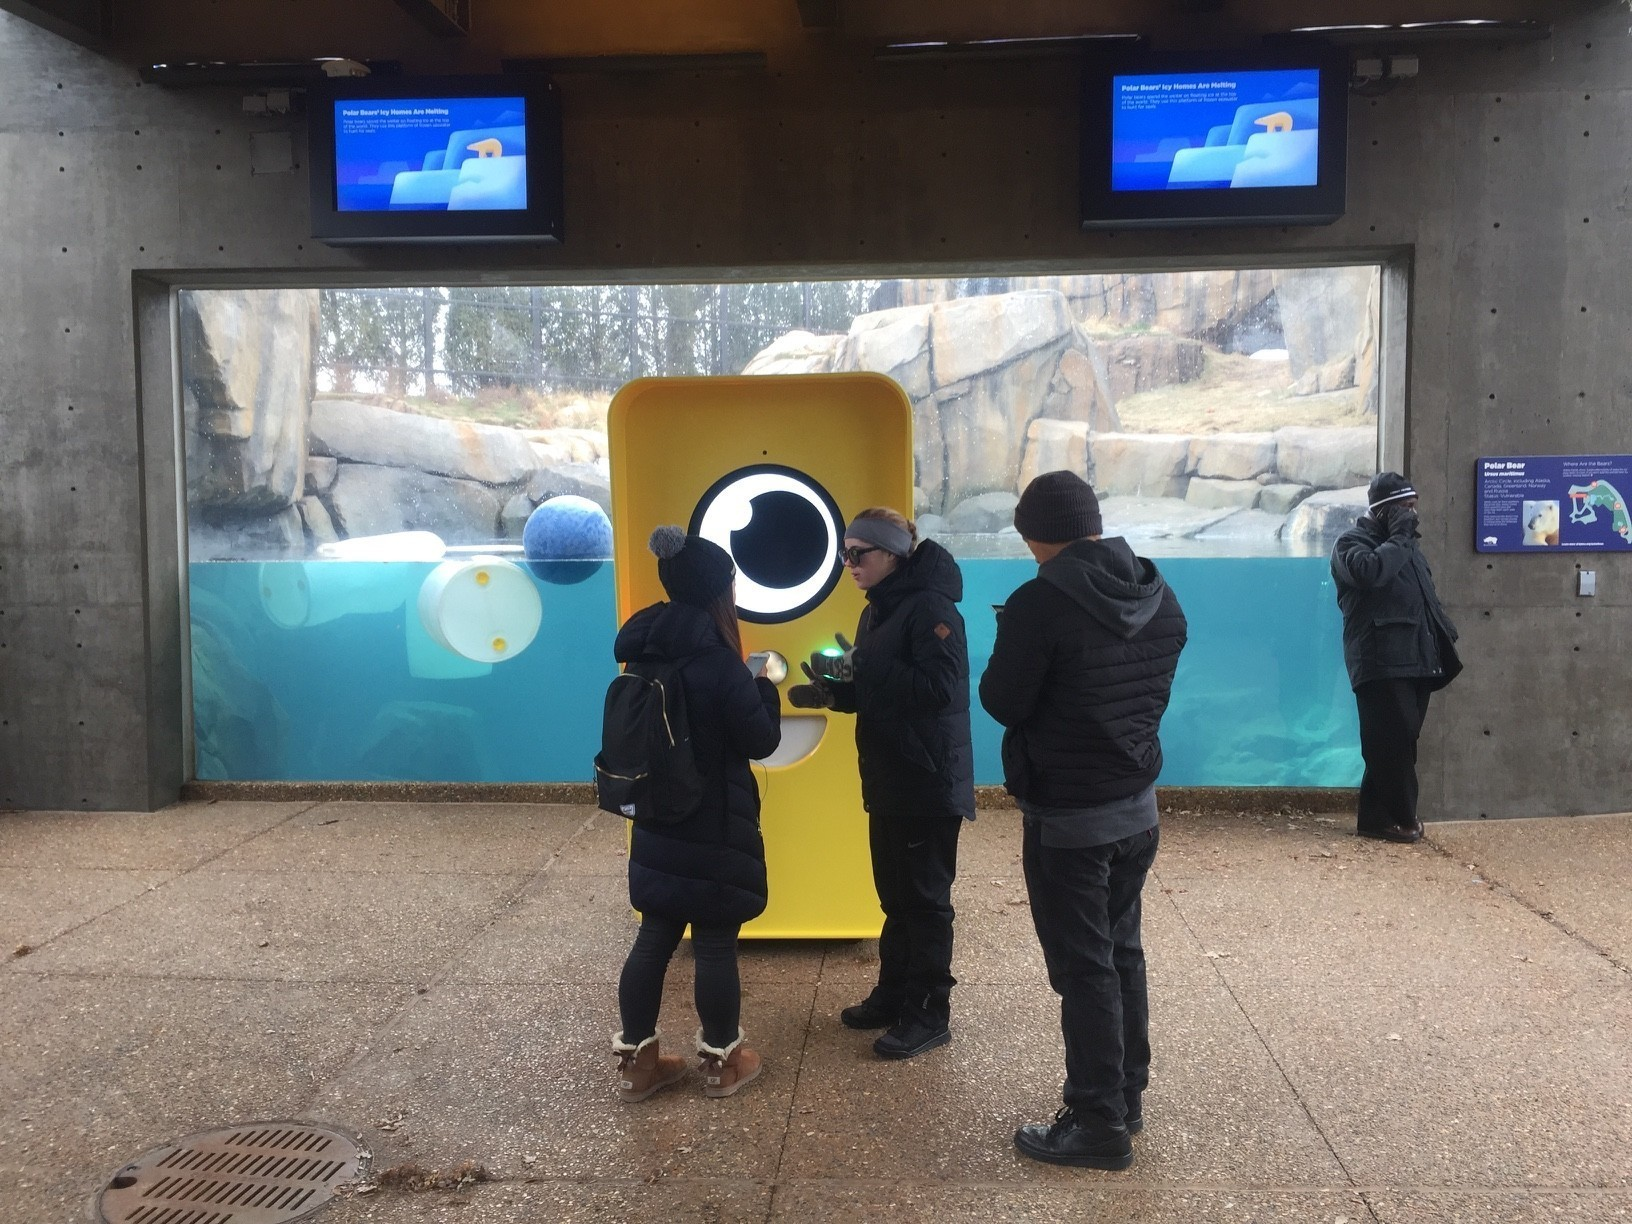 Snapchat Spectacles land at Lincoln Park Zoo